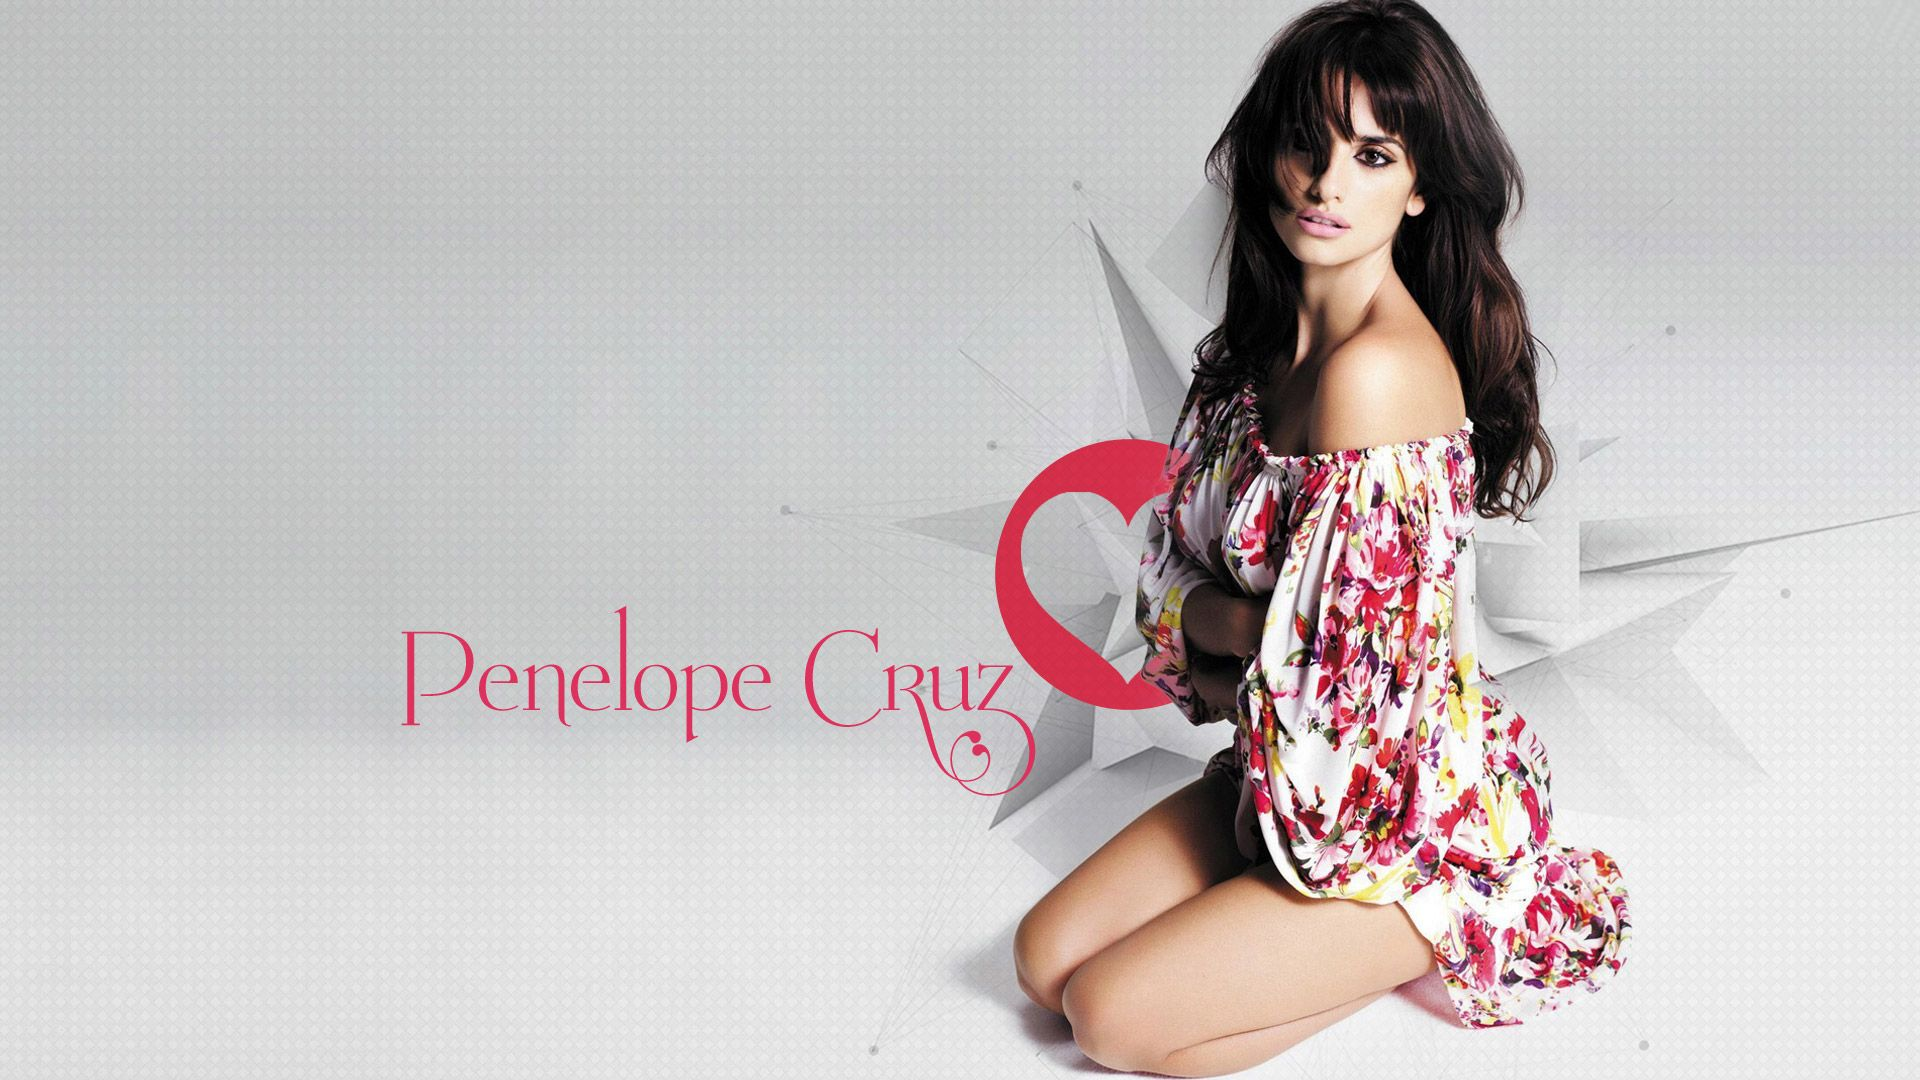 1000+ images about Penelope Cruz on Pinterest | Sexy, Beautiful ...